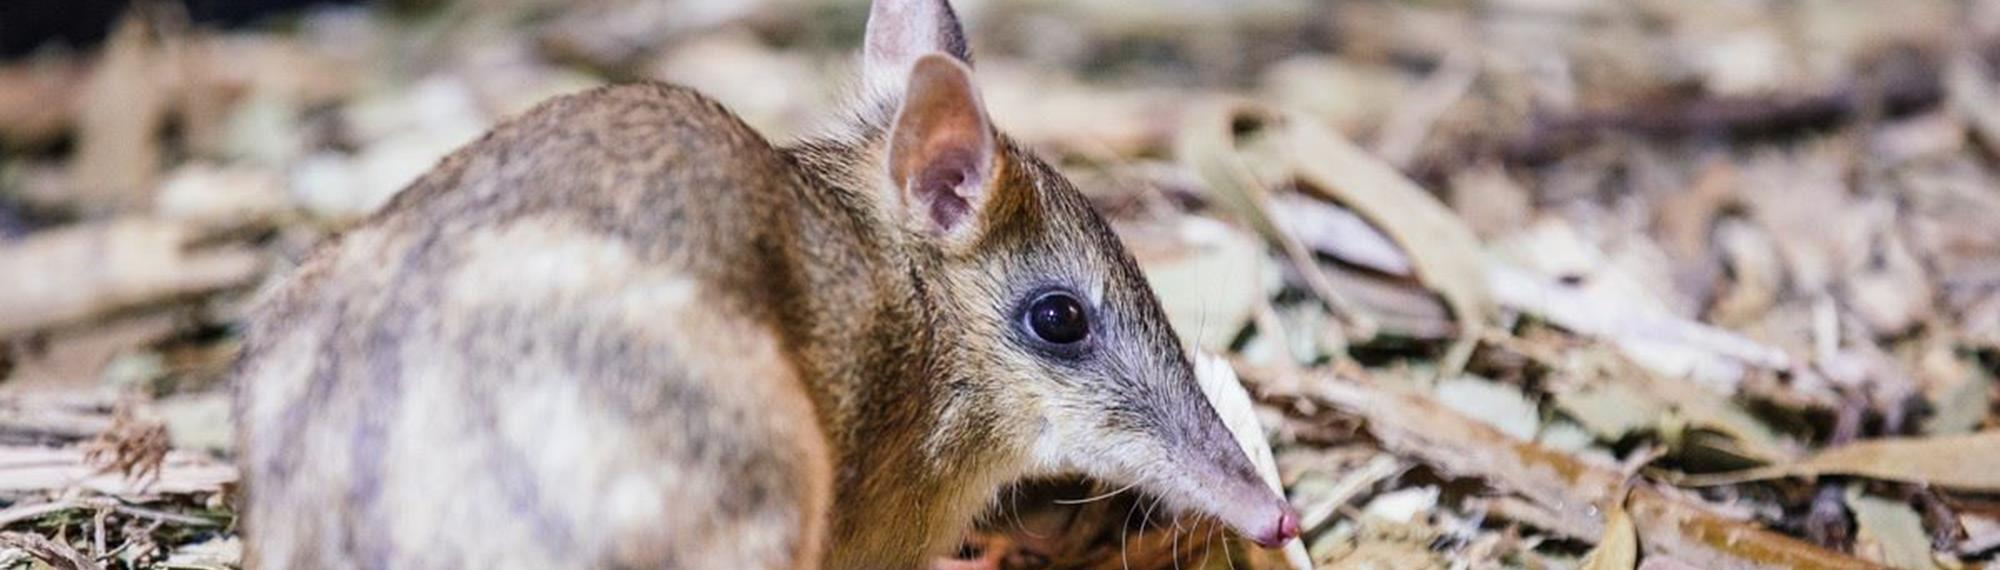 Eastern Barred Bandicoot looking at the camera while standing in some leaf litter.